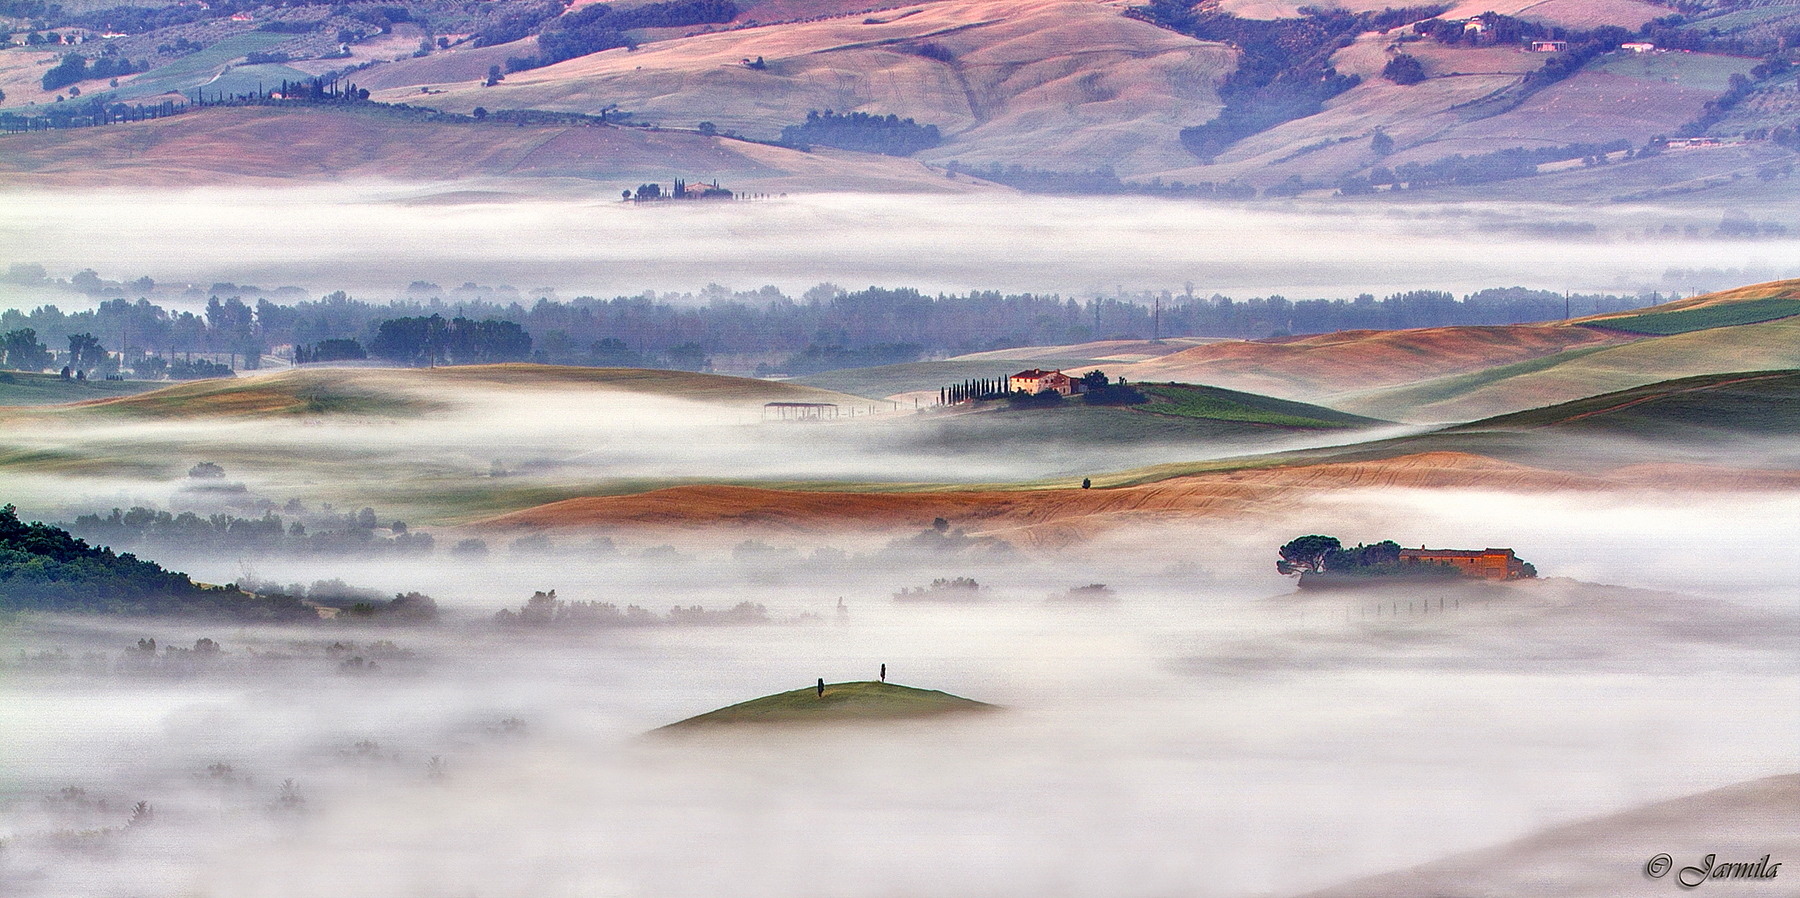 Waking up in the heart of Val d'Orcia...